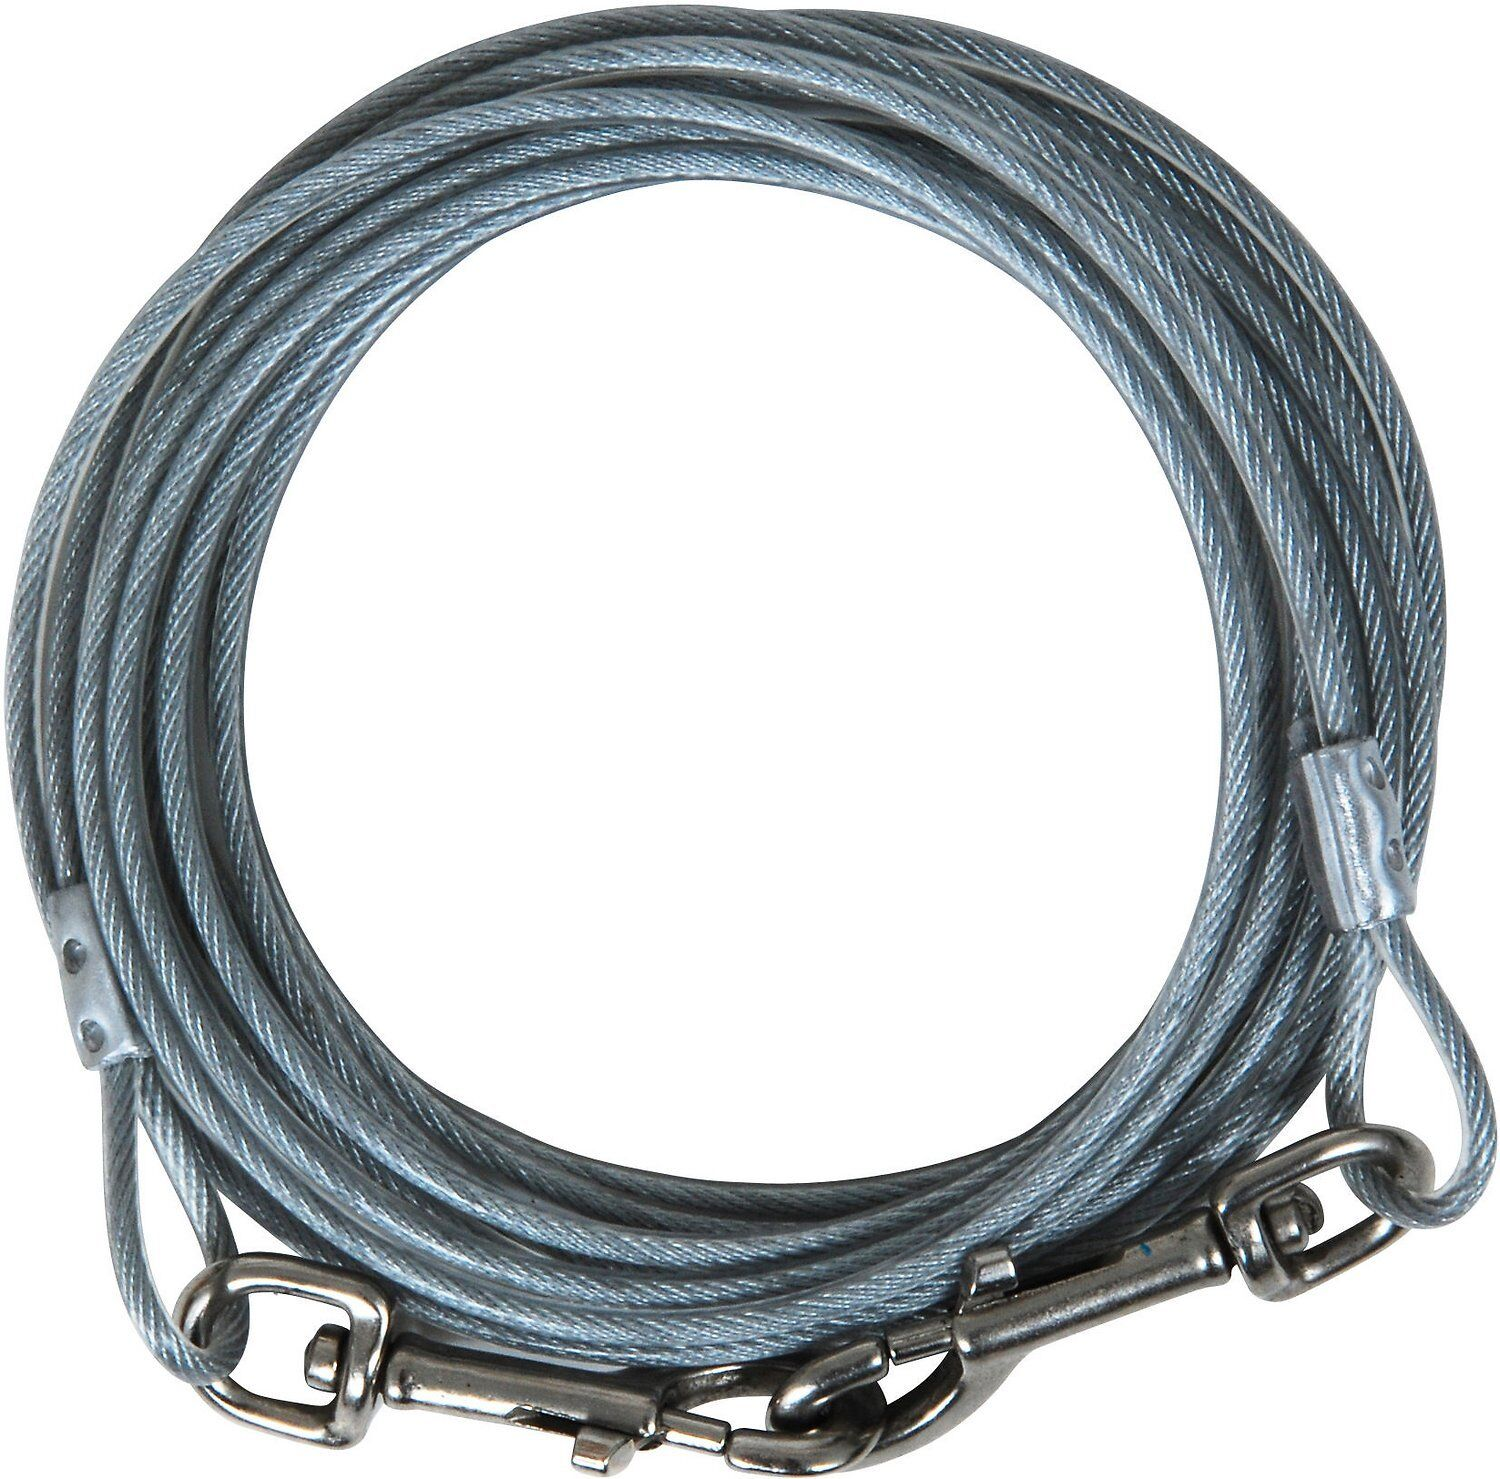 ASPEN PET CABLE TIE-OUT Aircraft Cable Coated W/Crack-Resist